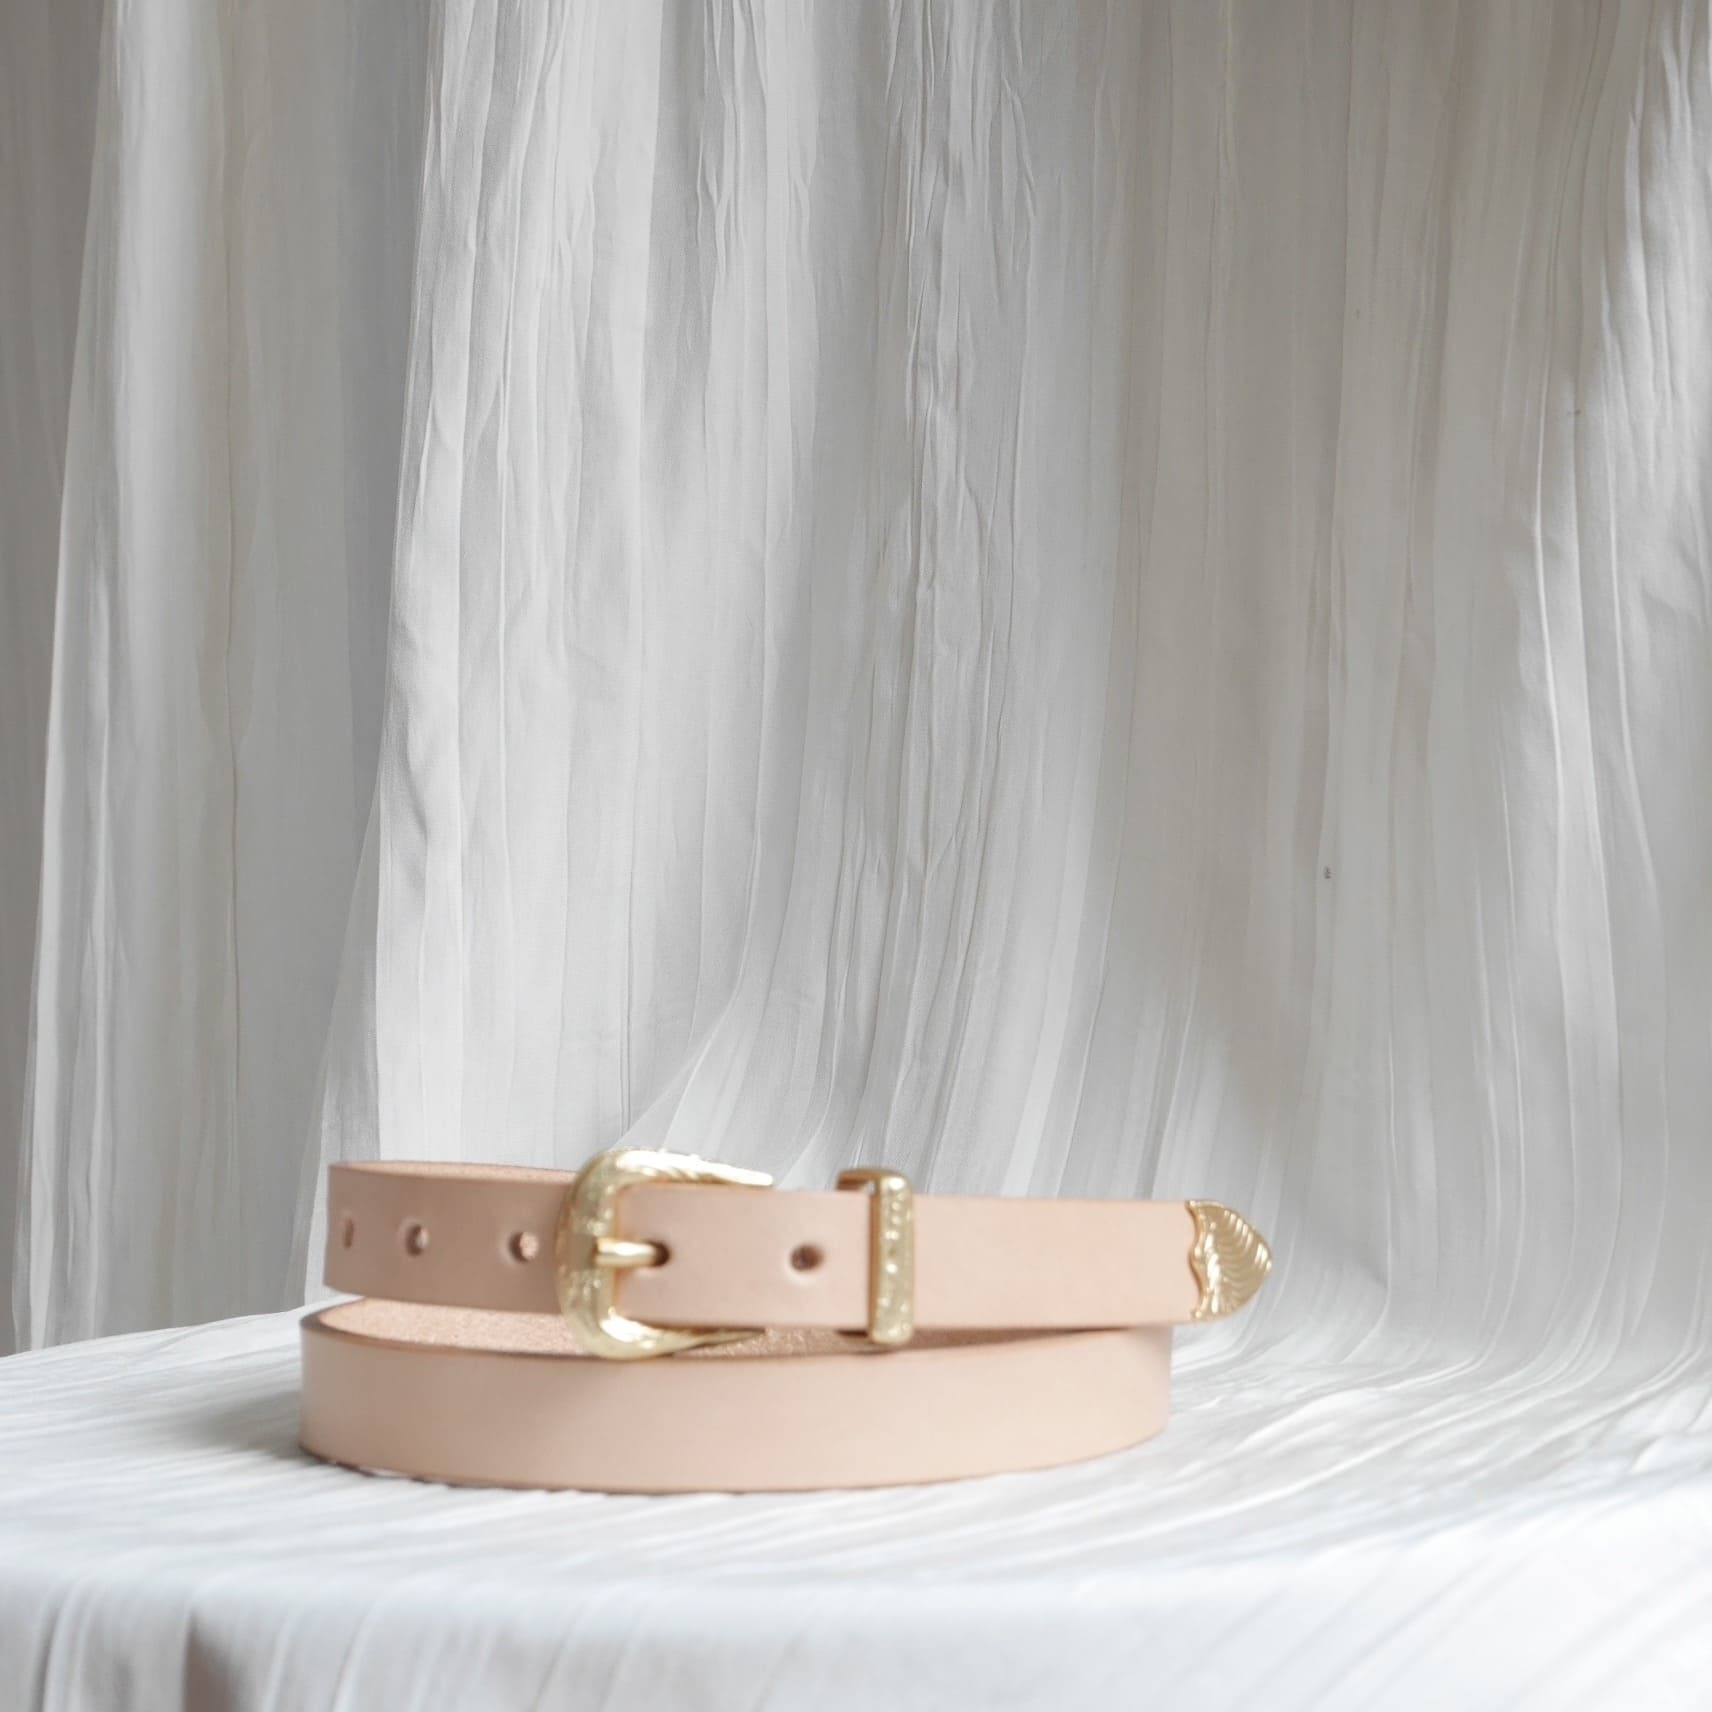 LEATER BELT 20 /NUDE×GOLD BUCKLE